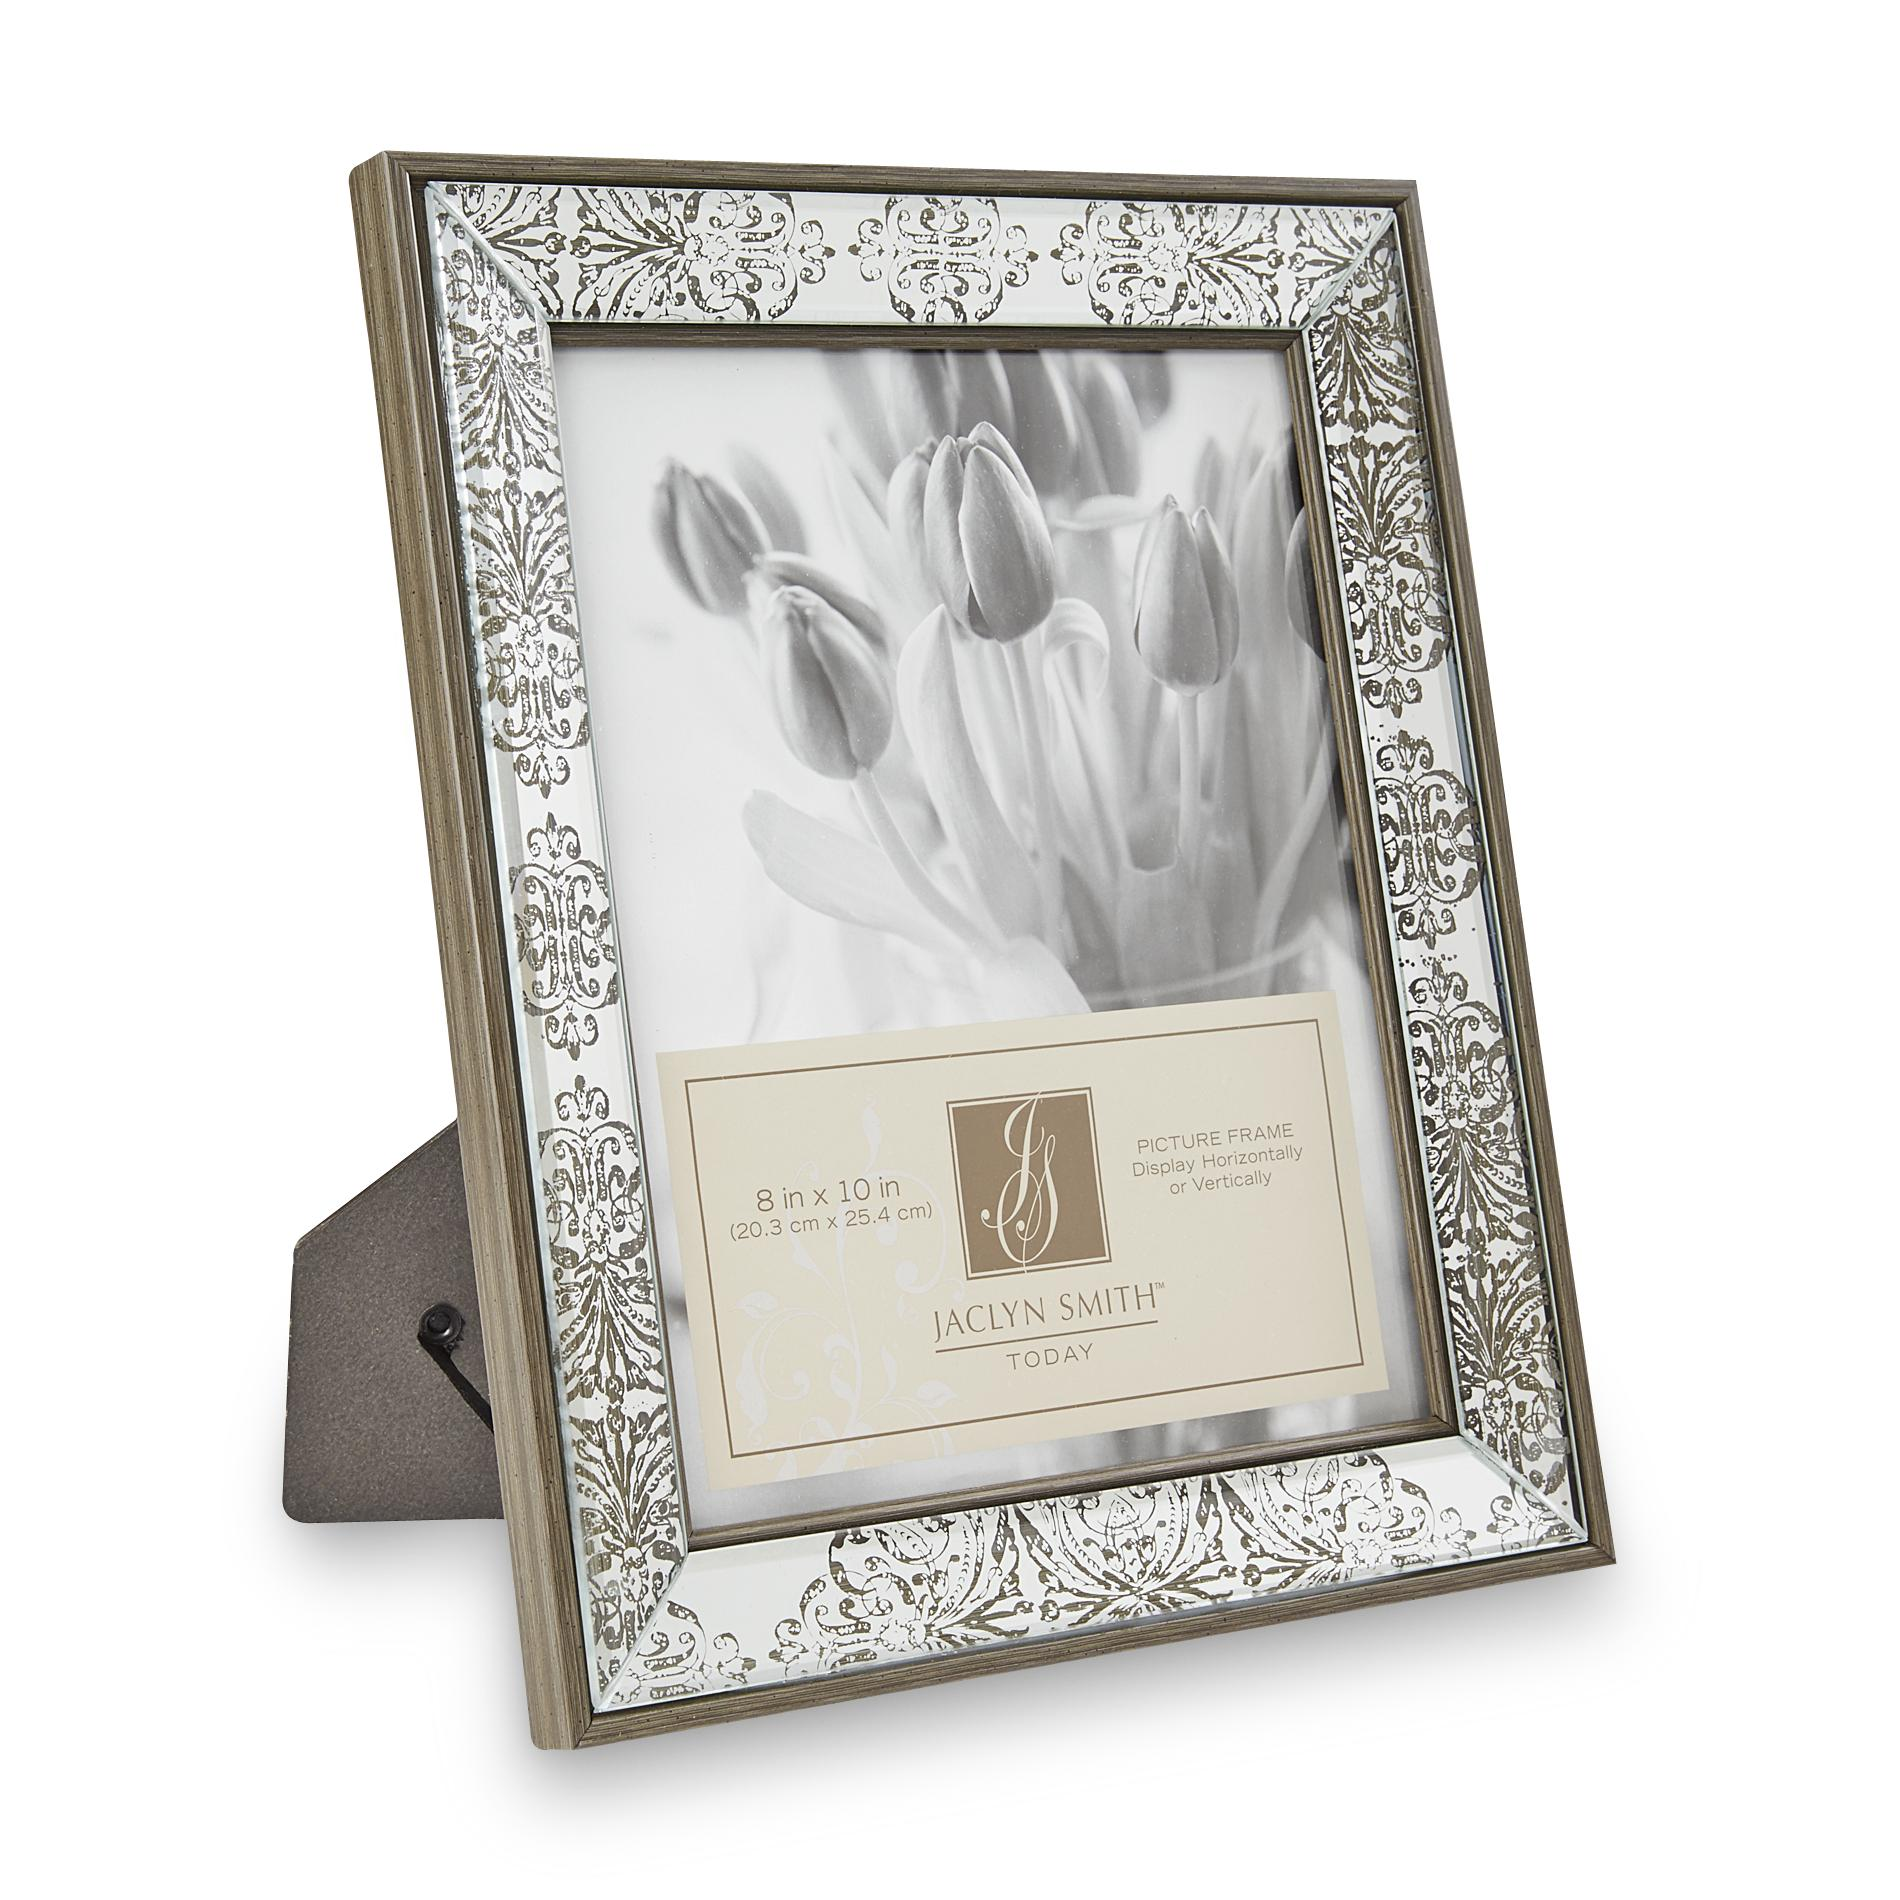 Mirrored Picture Frames Jaclyn Smith 8 Quot X 10 Quot Mirrored Picture Frame